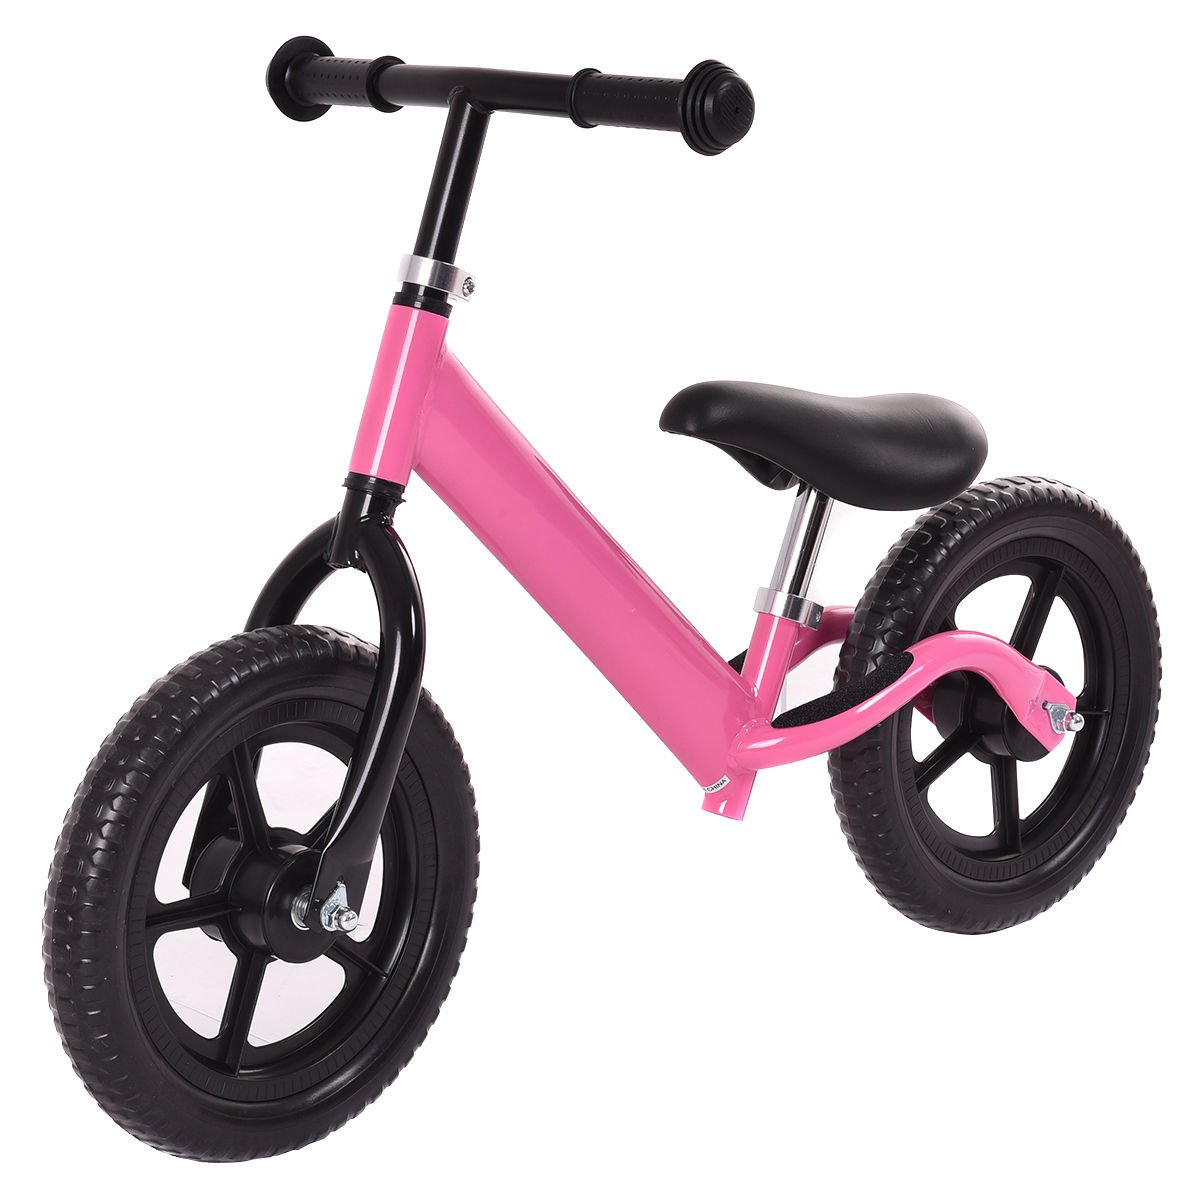 Costzon 12'' Classic No-Pedal Balance Bike Walking Bicycle for Kids Age 2-7 w/ Adjustable Seat (Pink)